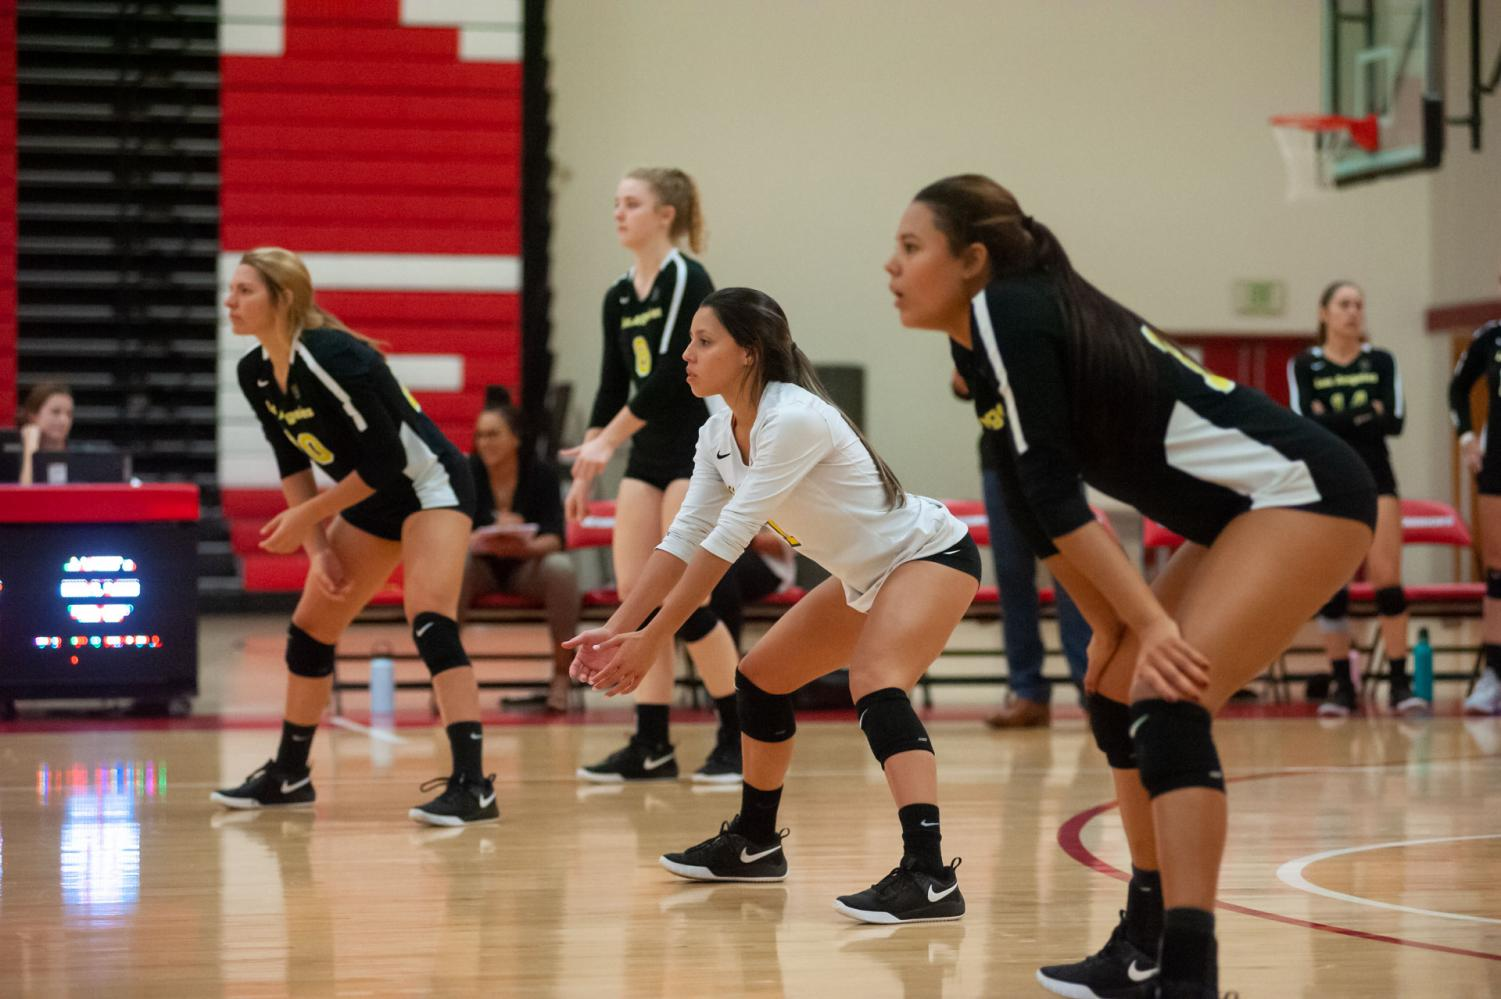 Cal State LA women's volleyball took home another victory against Stanislaus State 3-1.